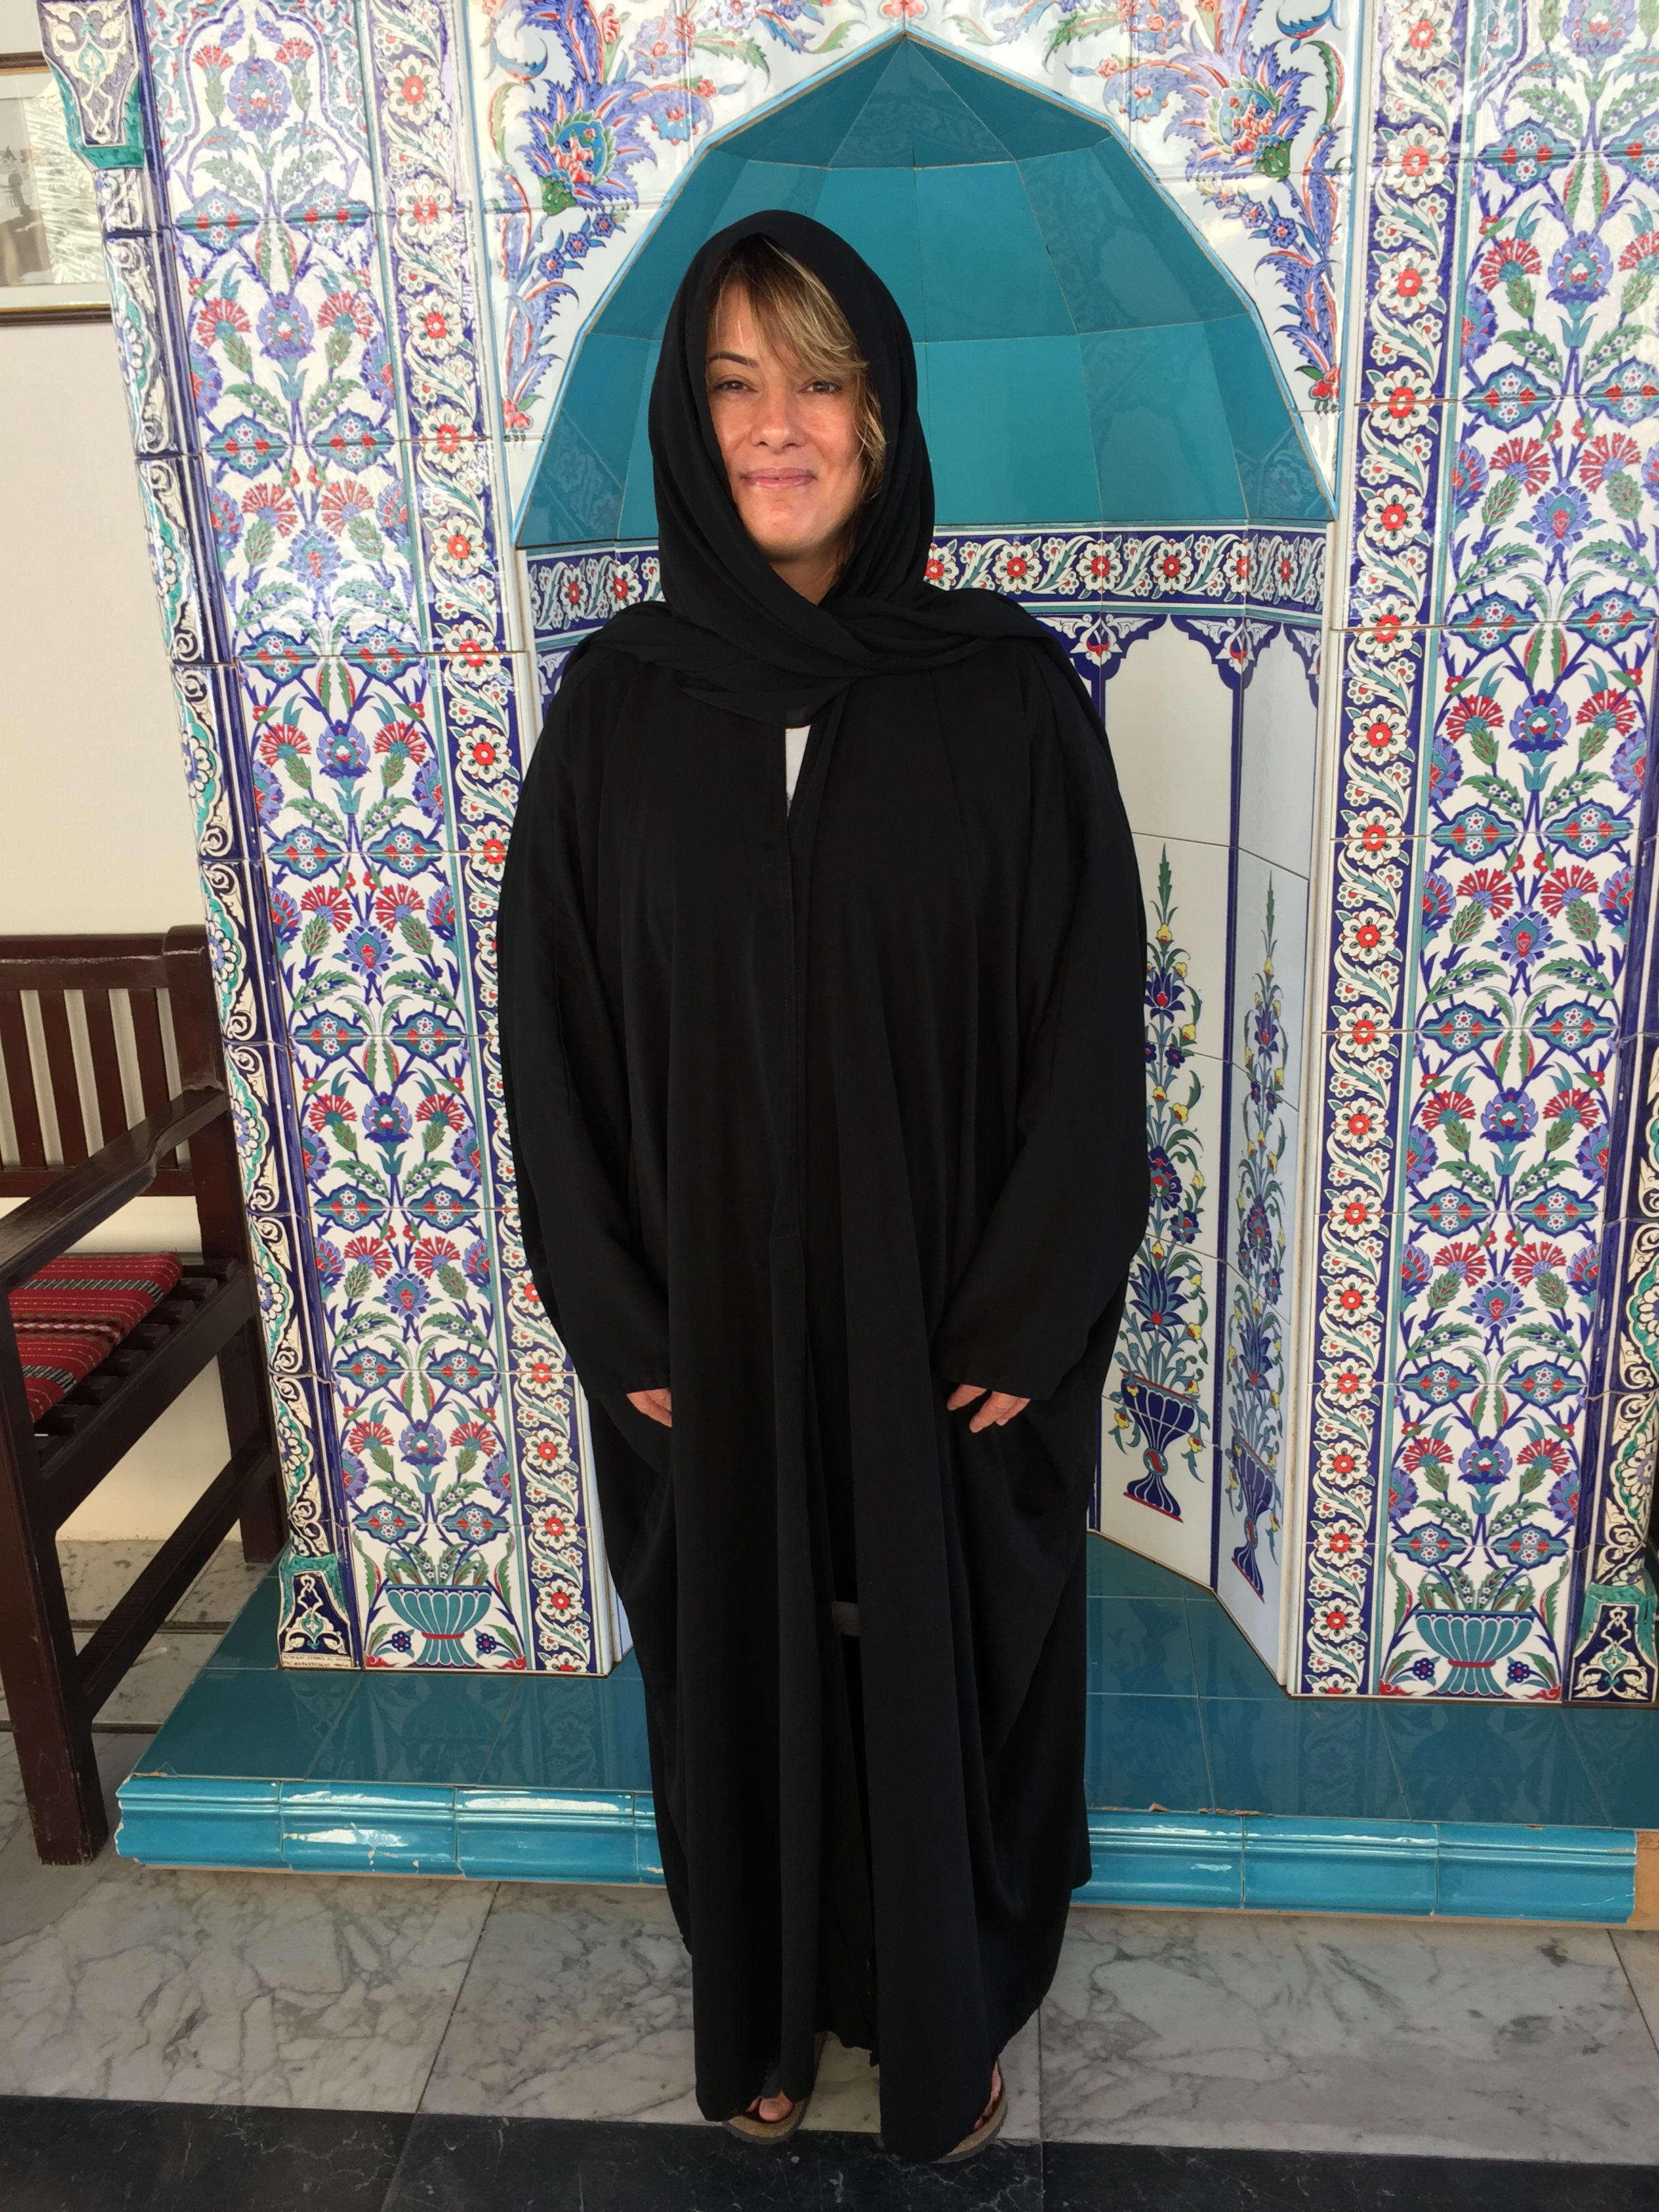 Grand Mosque of Kuwait - Kuwait City, Kuwait - Waiting area - Wearing the required abaya and shayla